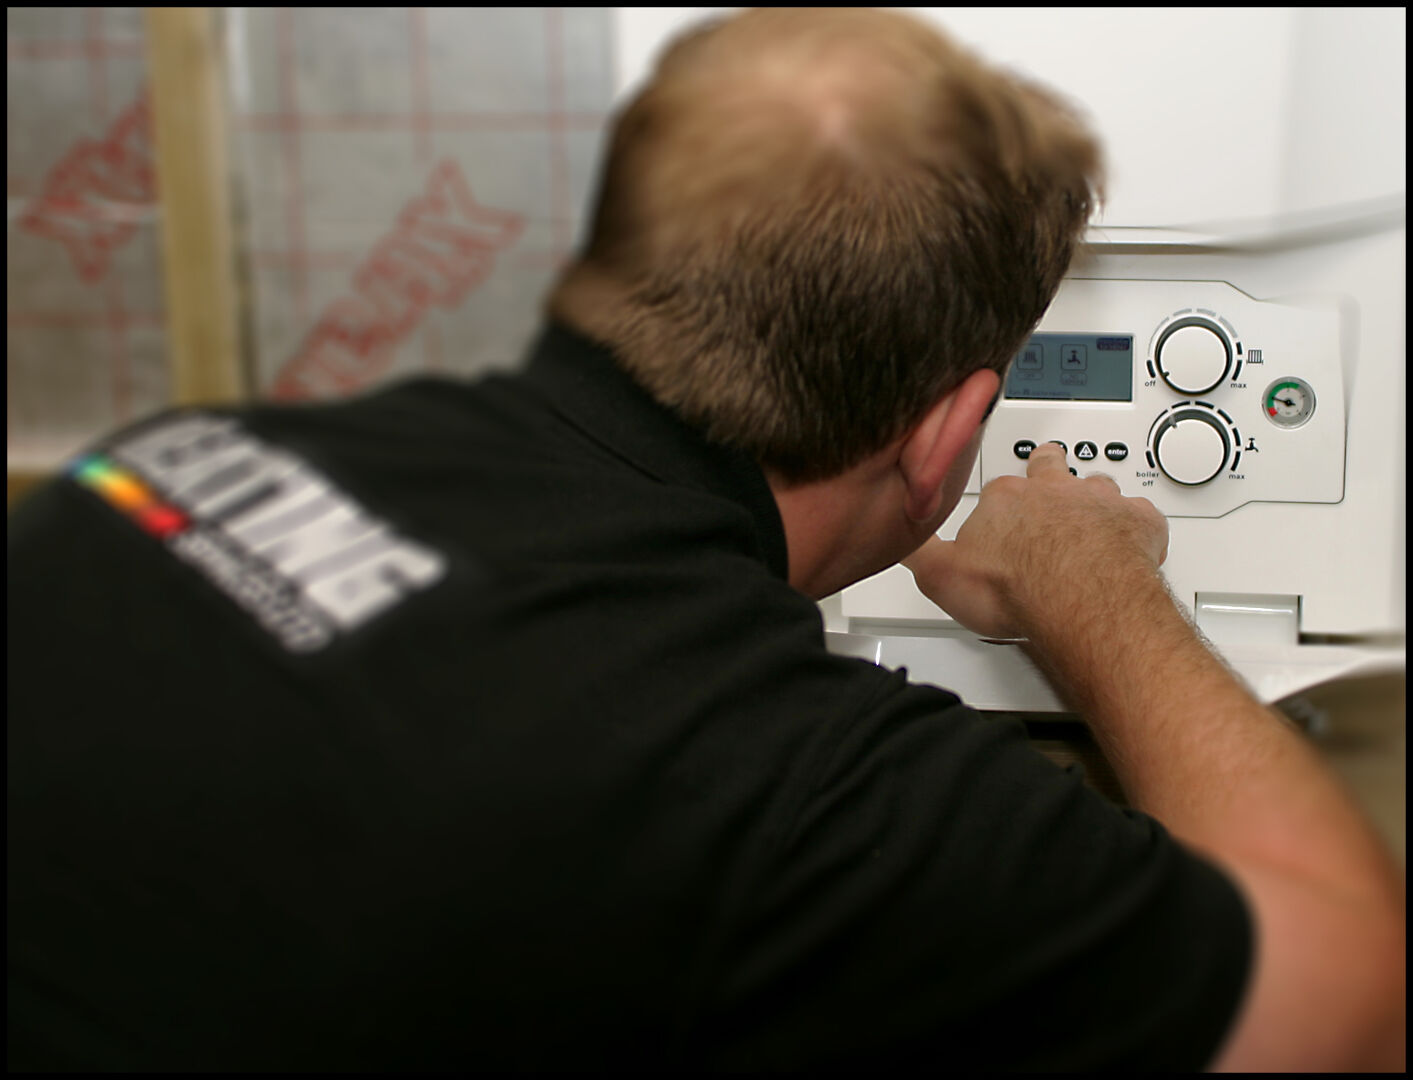 Plumbers Boiler Installation Service and Repairs and Bathroom Design and Installation by Heating Services Ltd in Bromley (4)